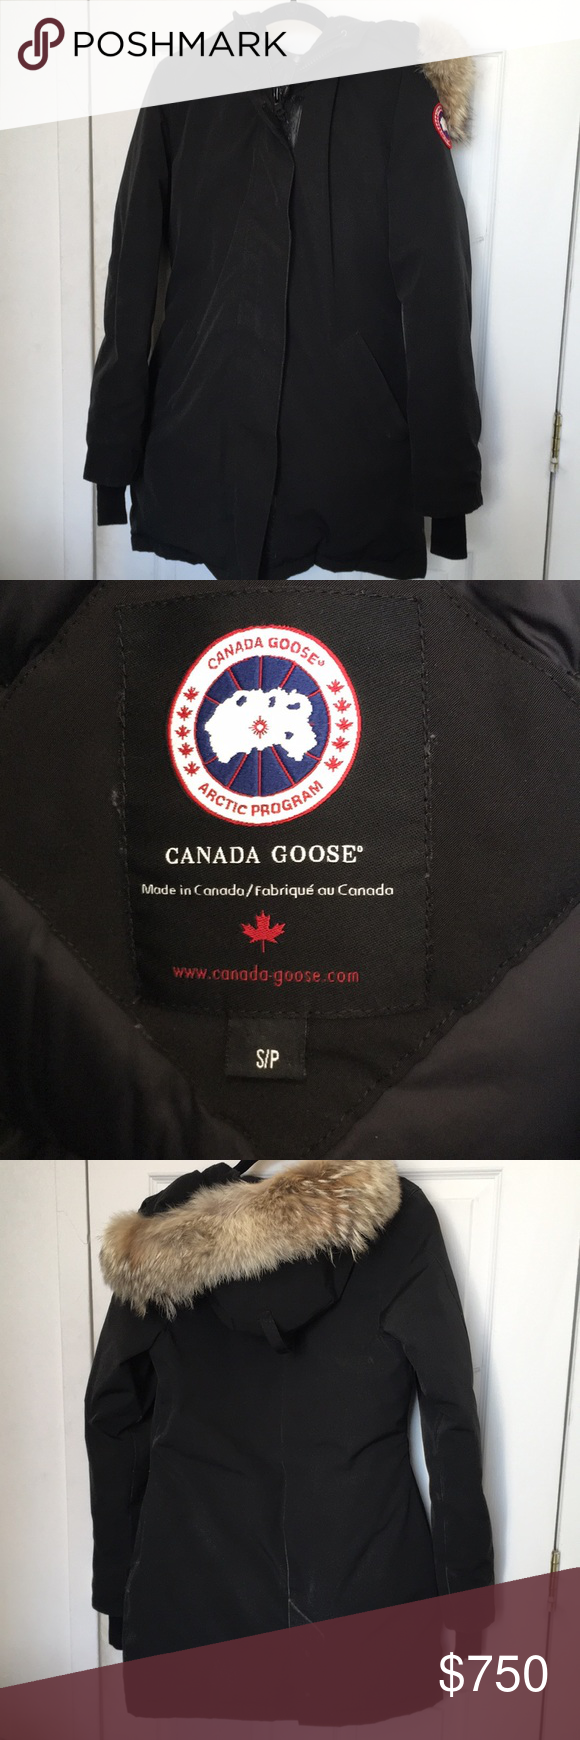 canada goose jacket dry cleaning, Canada Goose victoria